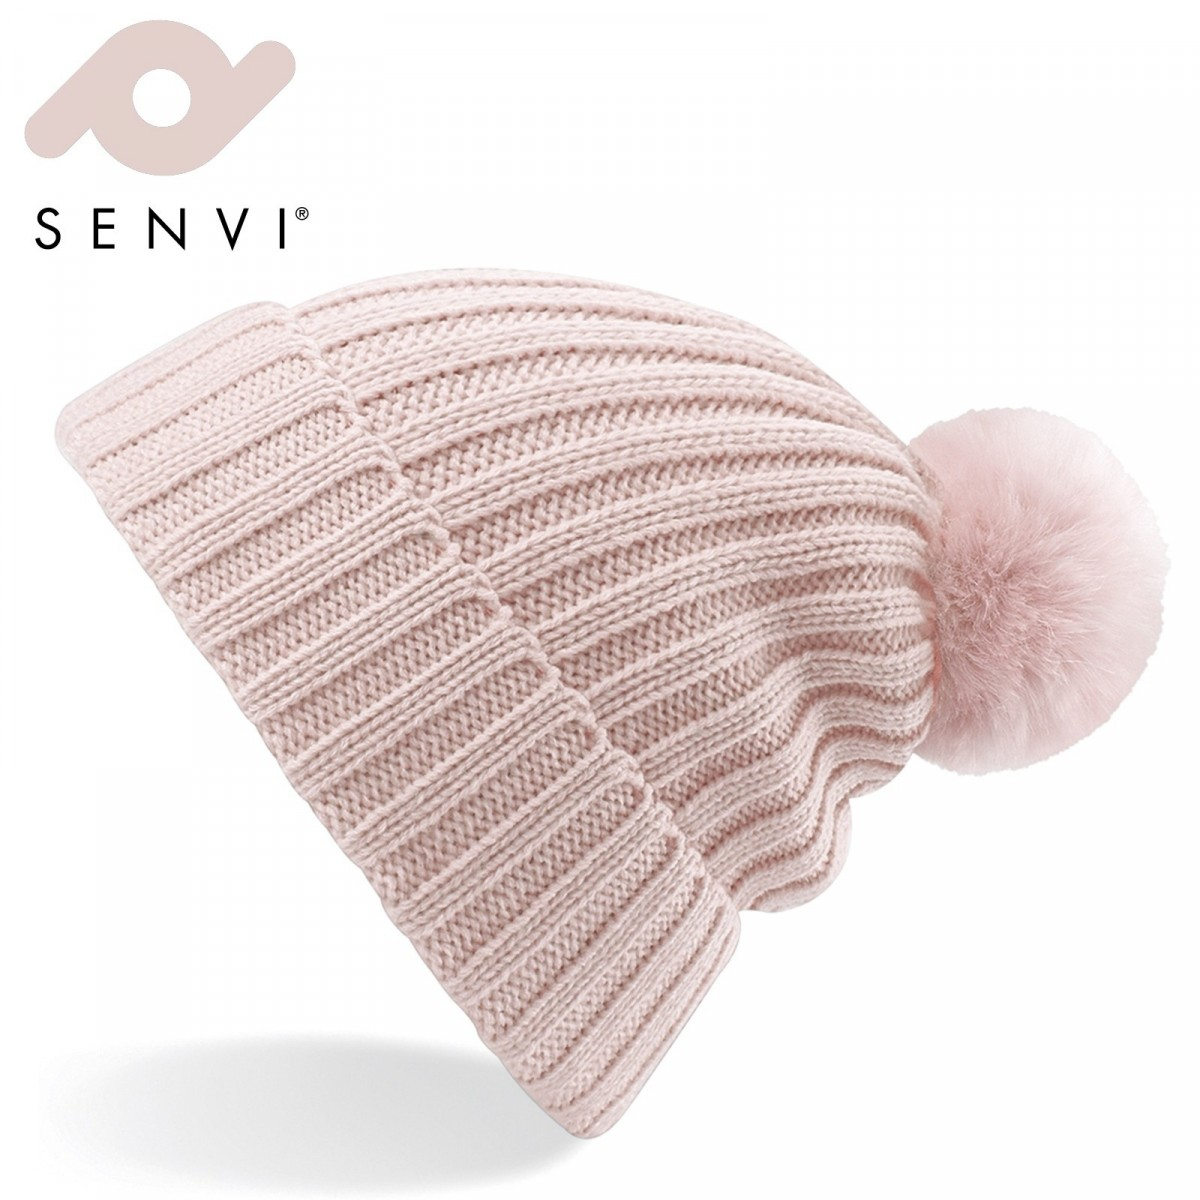 Senvi Arosa Fur Pom Pom Beanie Pastel Roze (One size fits all)